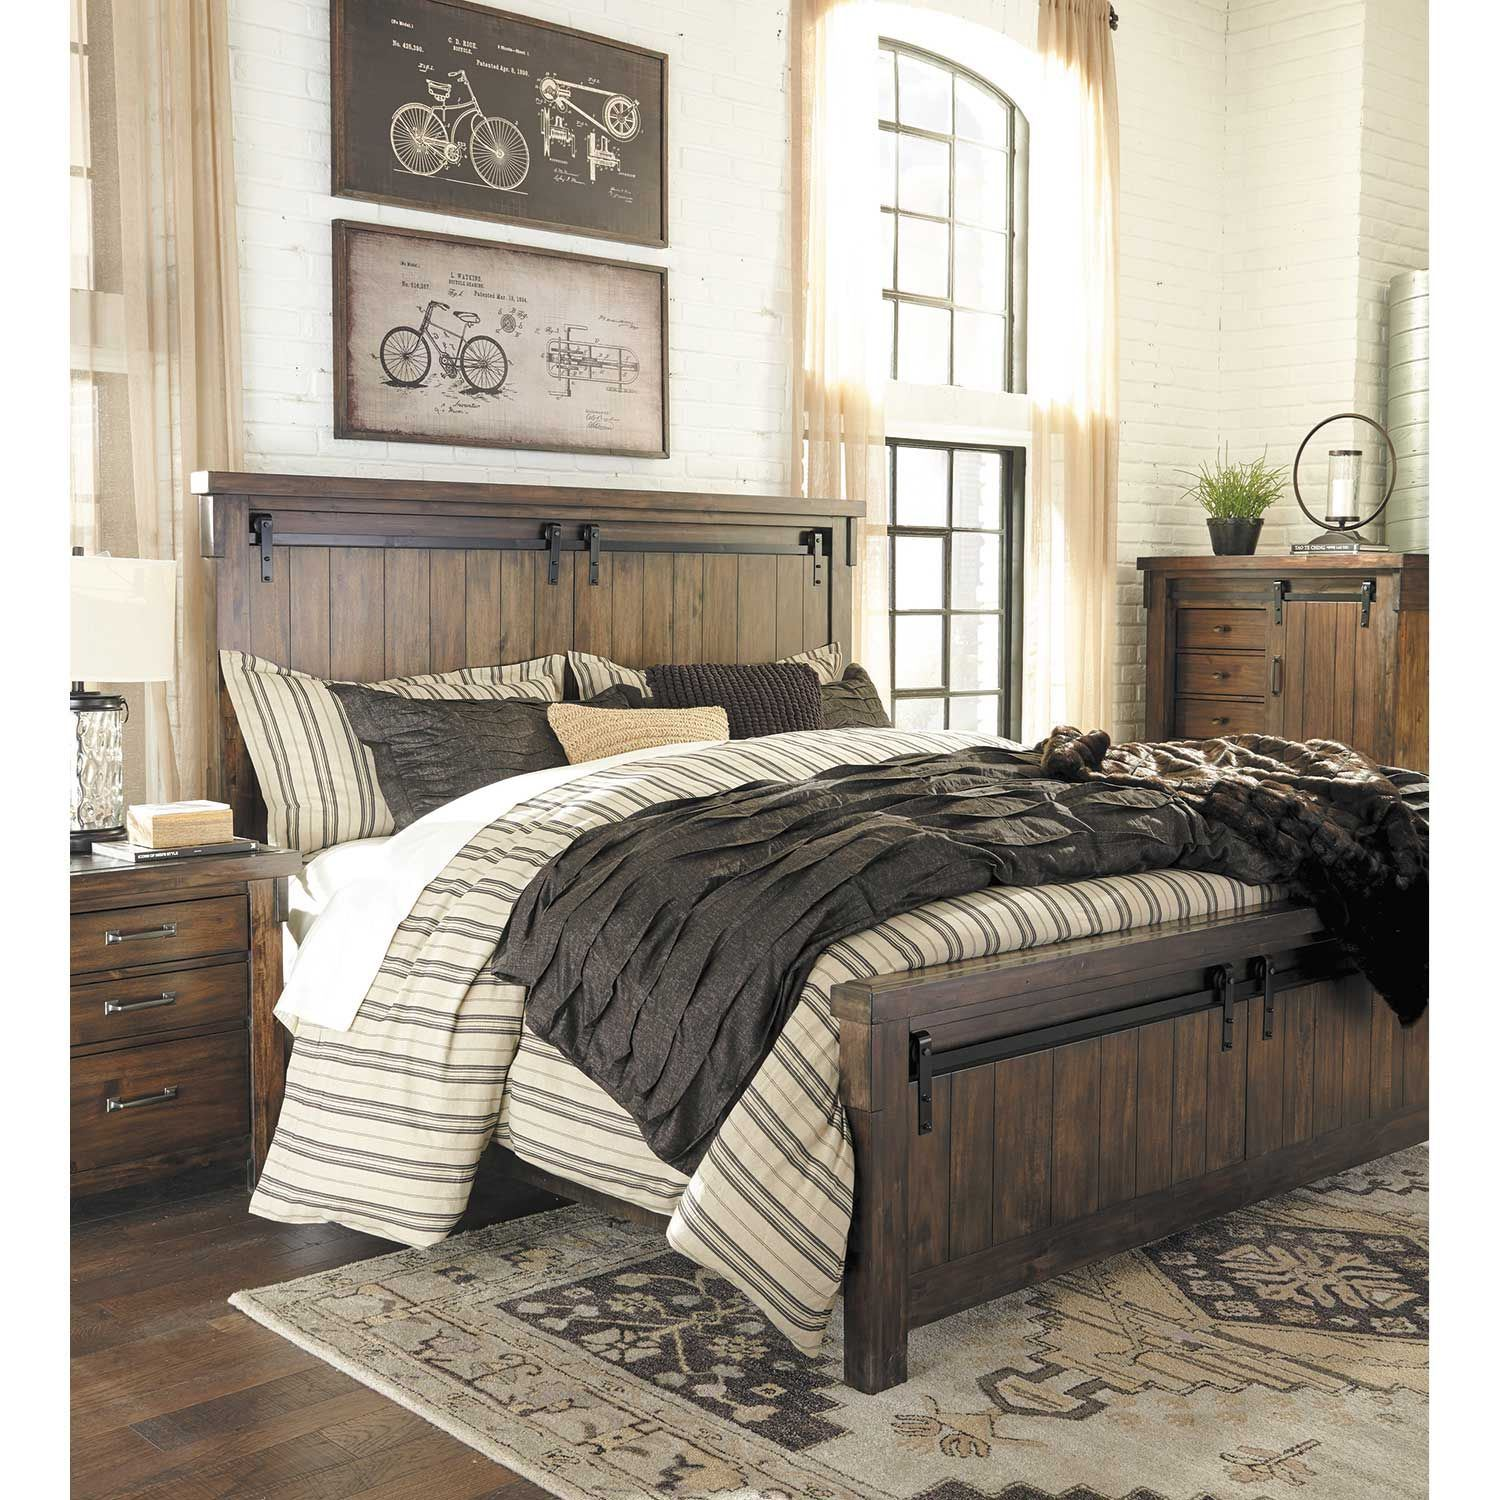 lakeleigh 5 piece bedroom set b718 qbed 31 36 46 93 ashley furniture afw. Black Bedroom Furniture Sets. Home Design Ideas